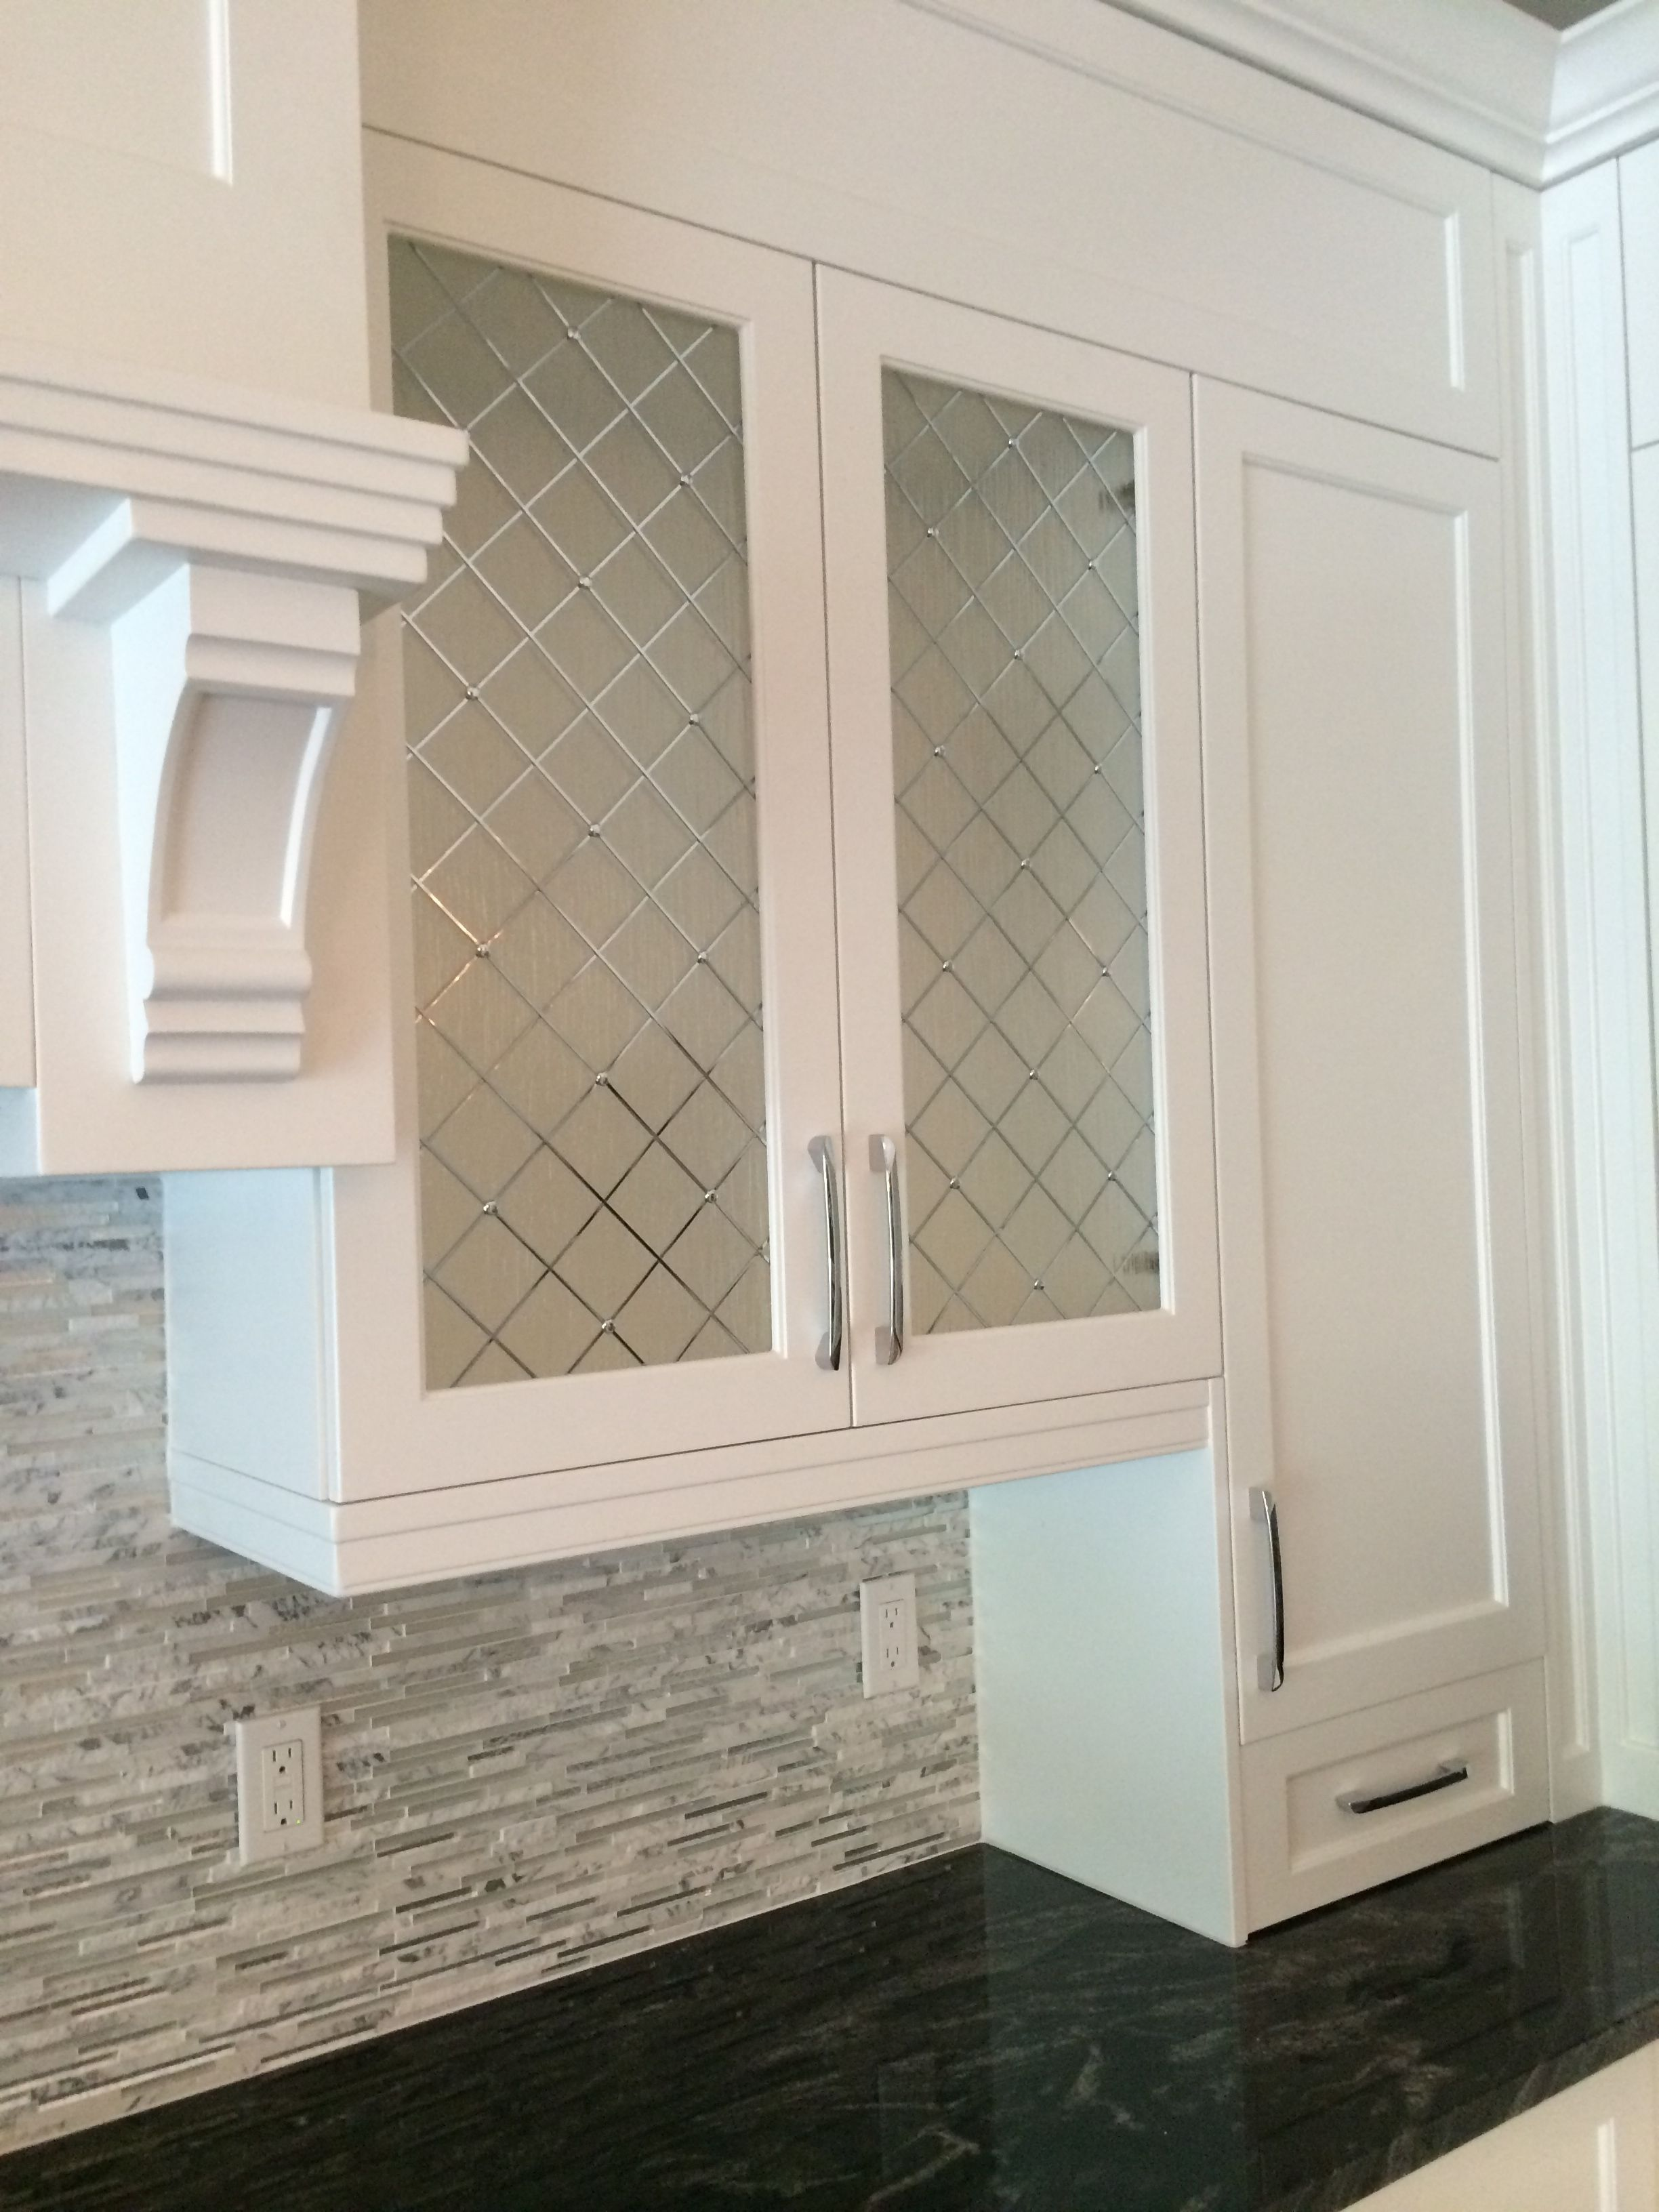 Decorative cabinet glass | PATTEREND GLASS in 2019 | Glass ...